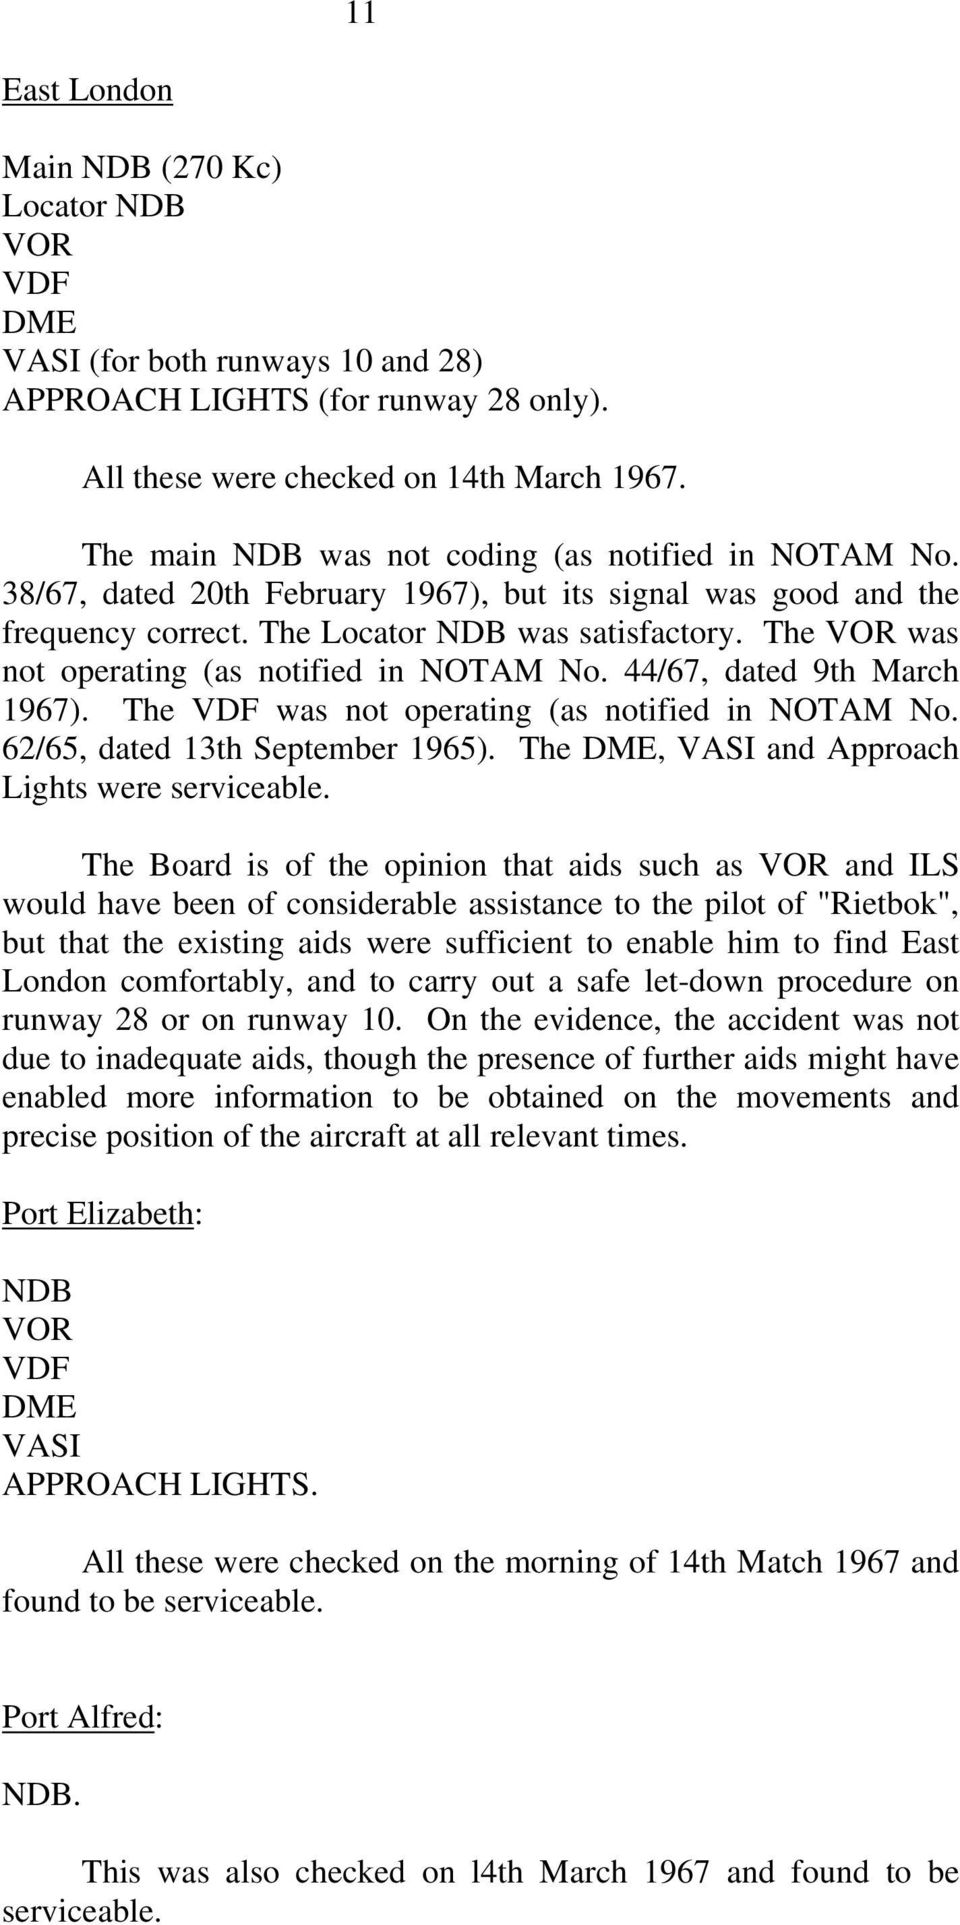 The VOR was not operating (as notified in NOTAM No. 44/67, dated 9th March 1967). The VDF was not operating (as notified in NOTAM No. 62/65, dated 13th September 1965).